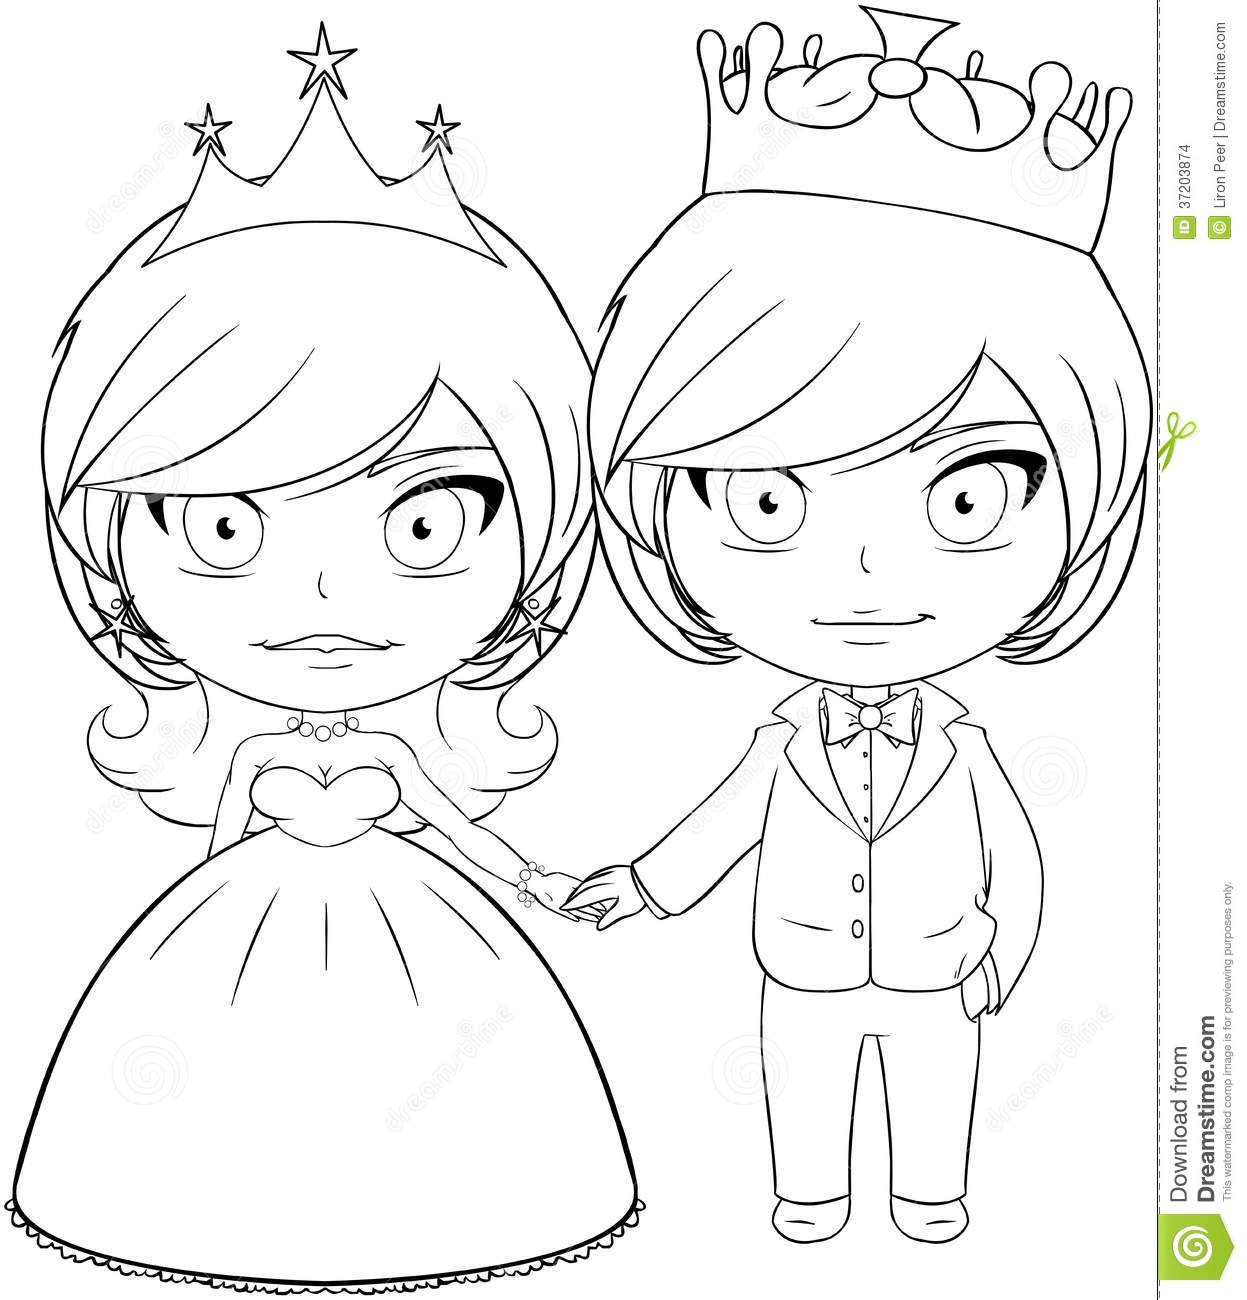 Prince And Princess Coloring Page 3 Stock Vector Image 37203874 Disney Princess Crown Coloring Pages